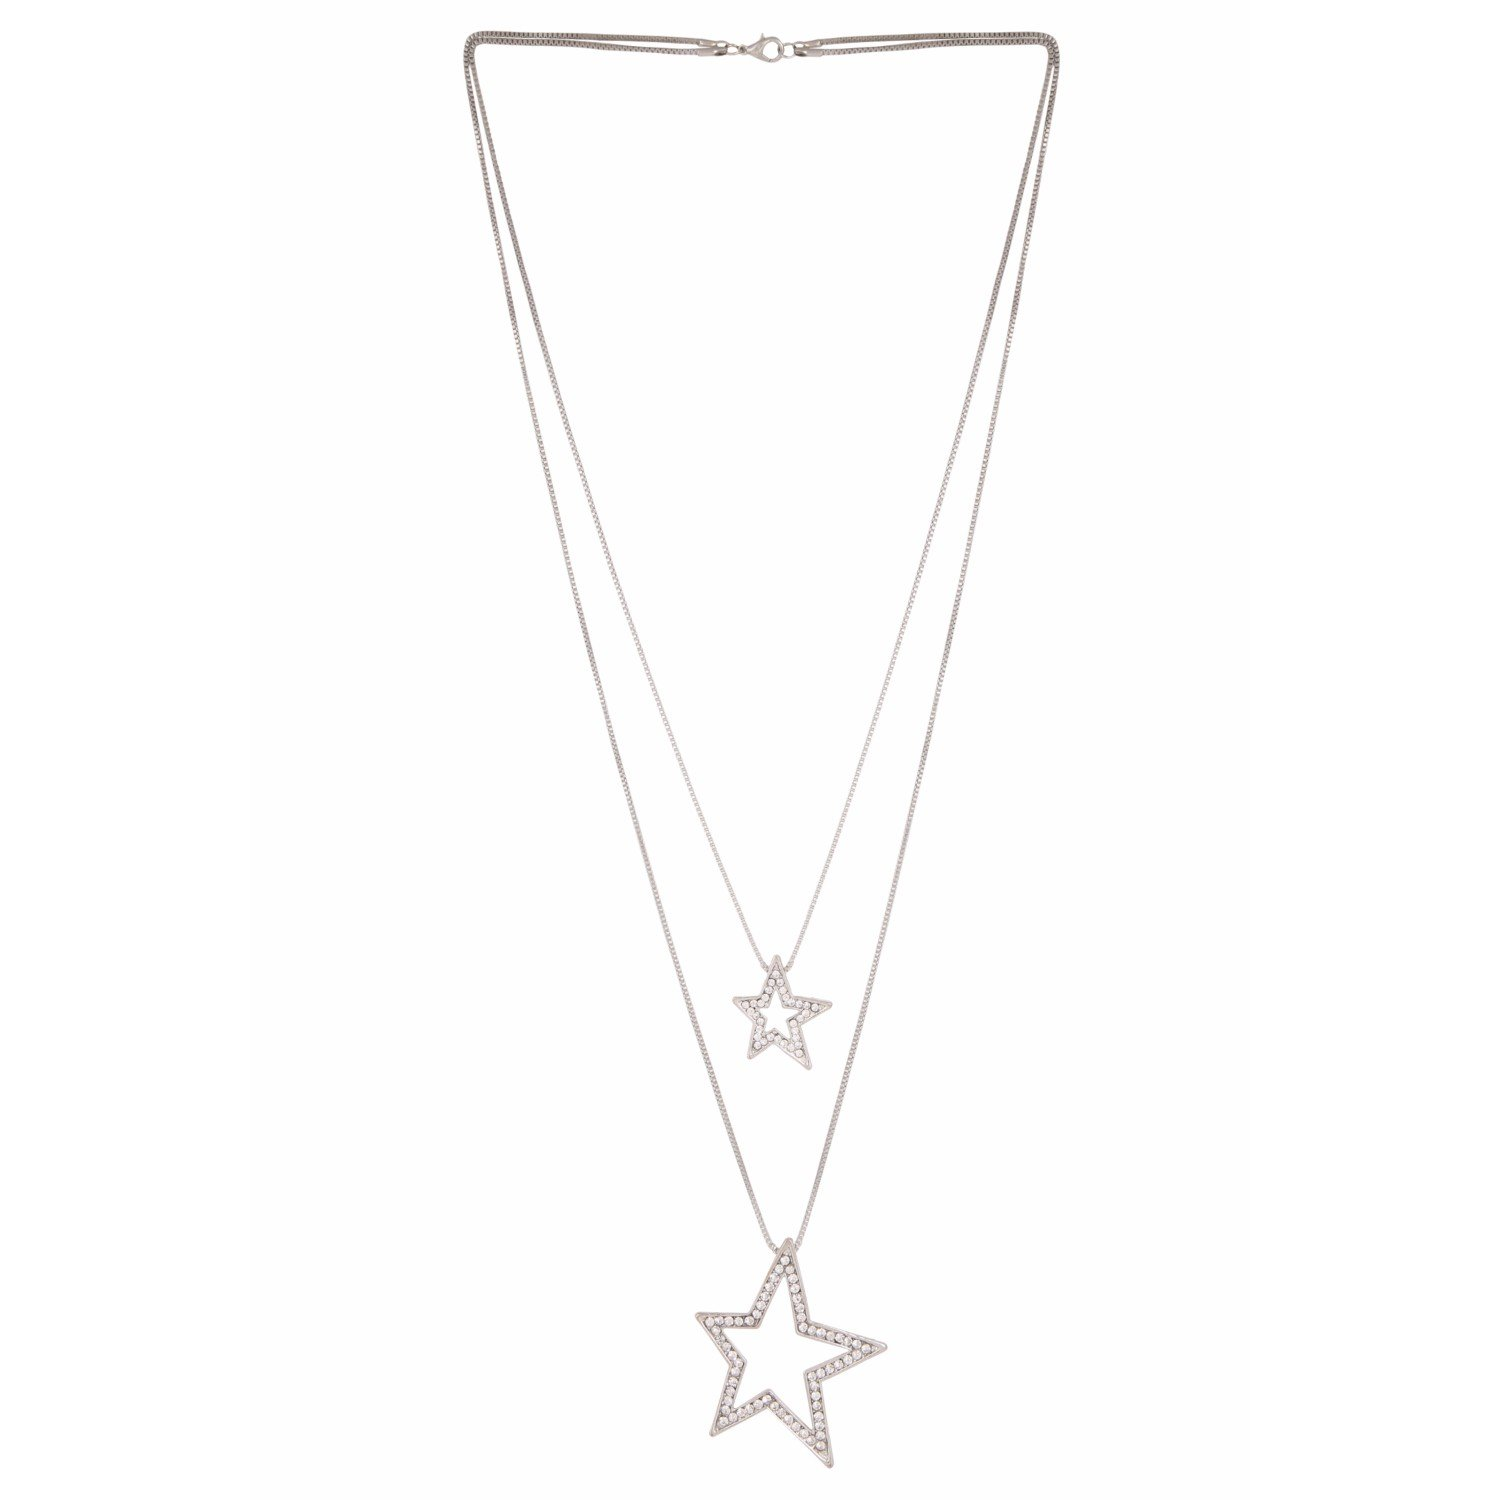 Efulgenz Trendy Stylish Fancy Party Wear Double Layered Long Chain Key Pendant Lariat Y Necklace Fashion Costume Accessories for Women and Girls (Style1)